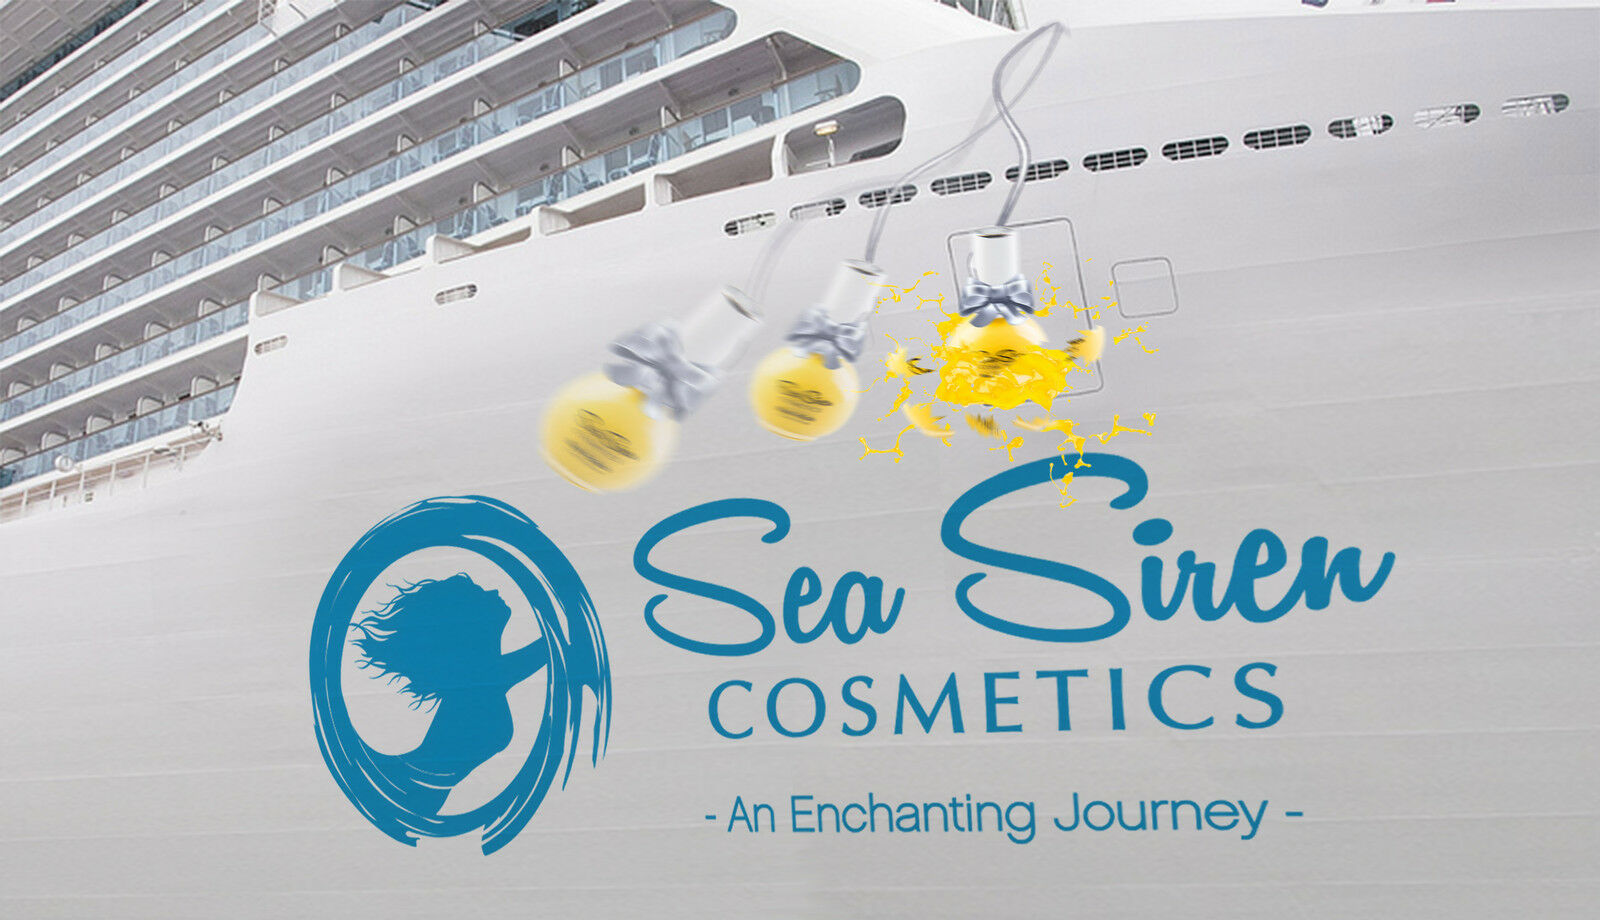 Sea Siren Cosmetics